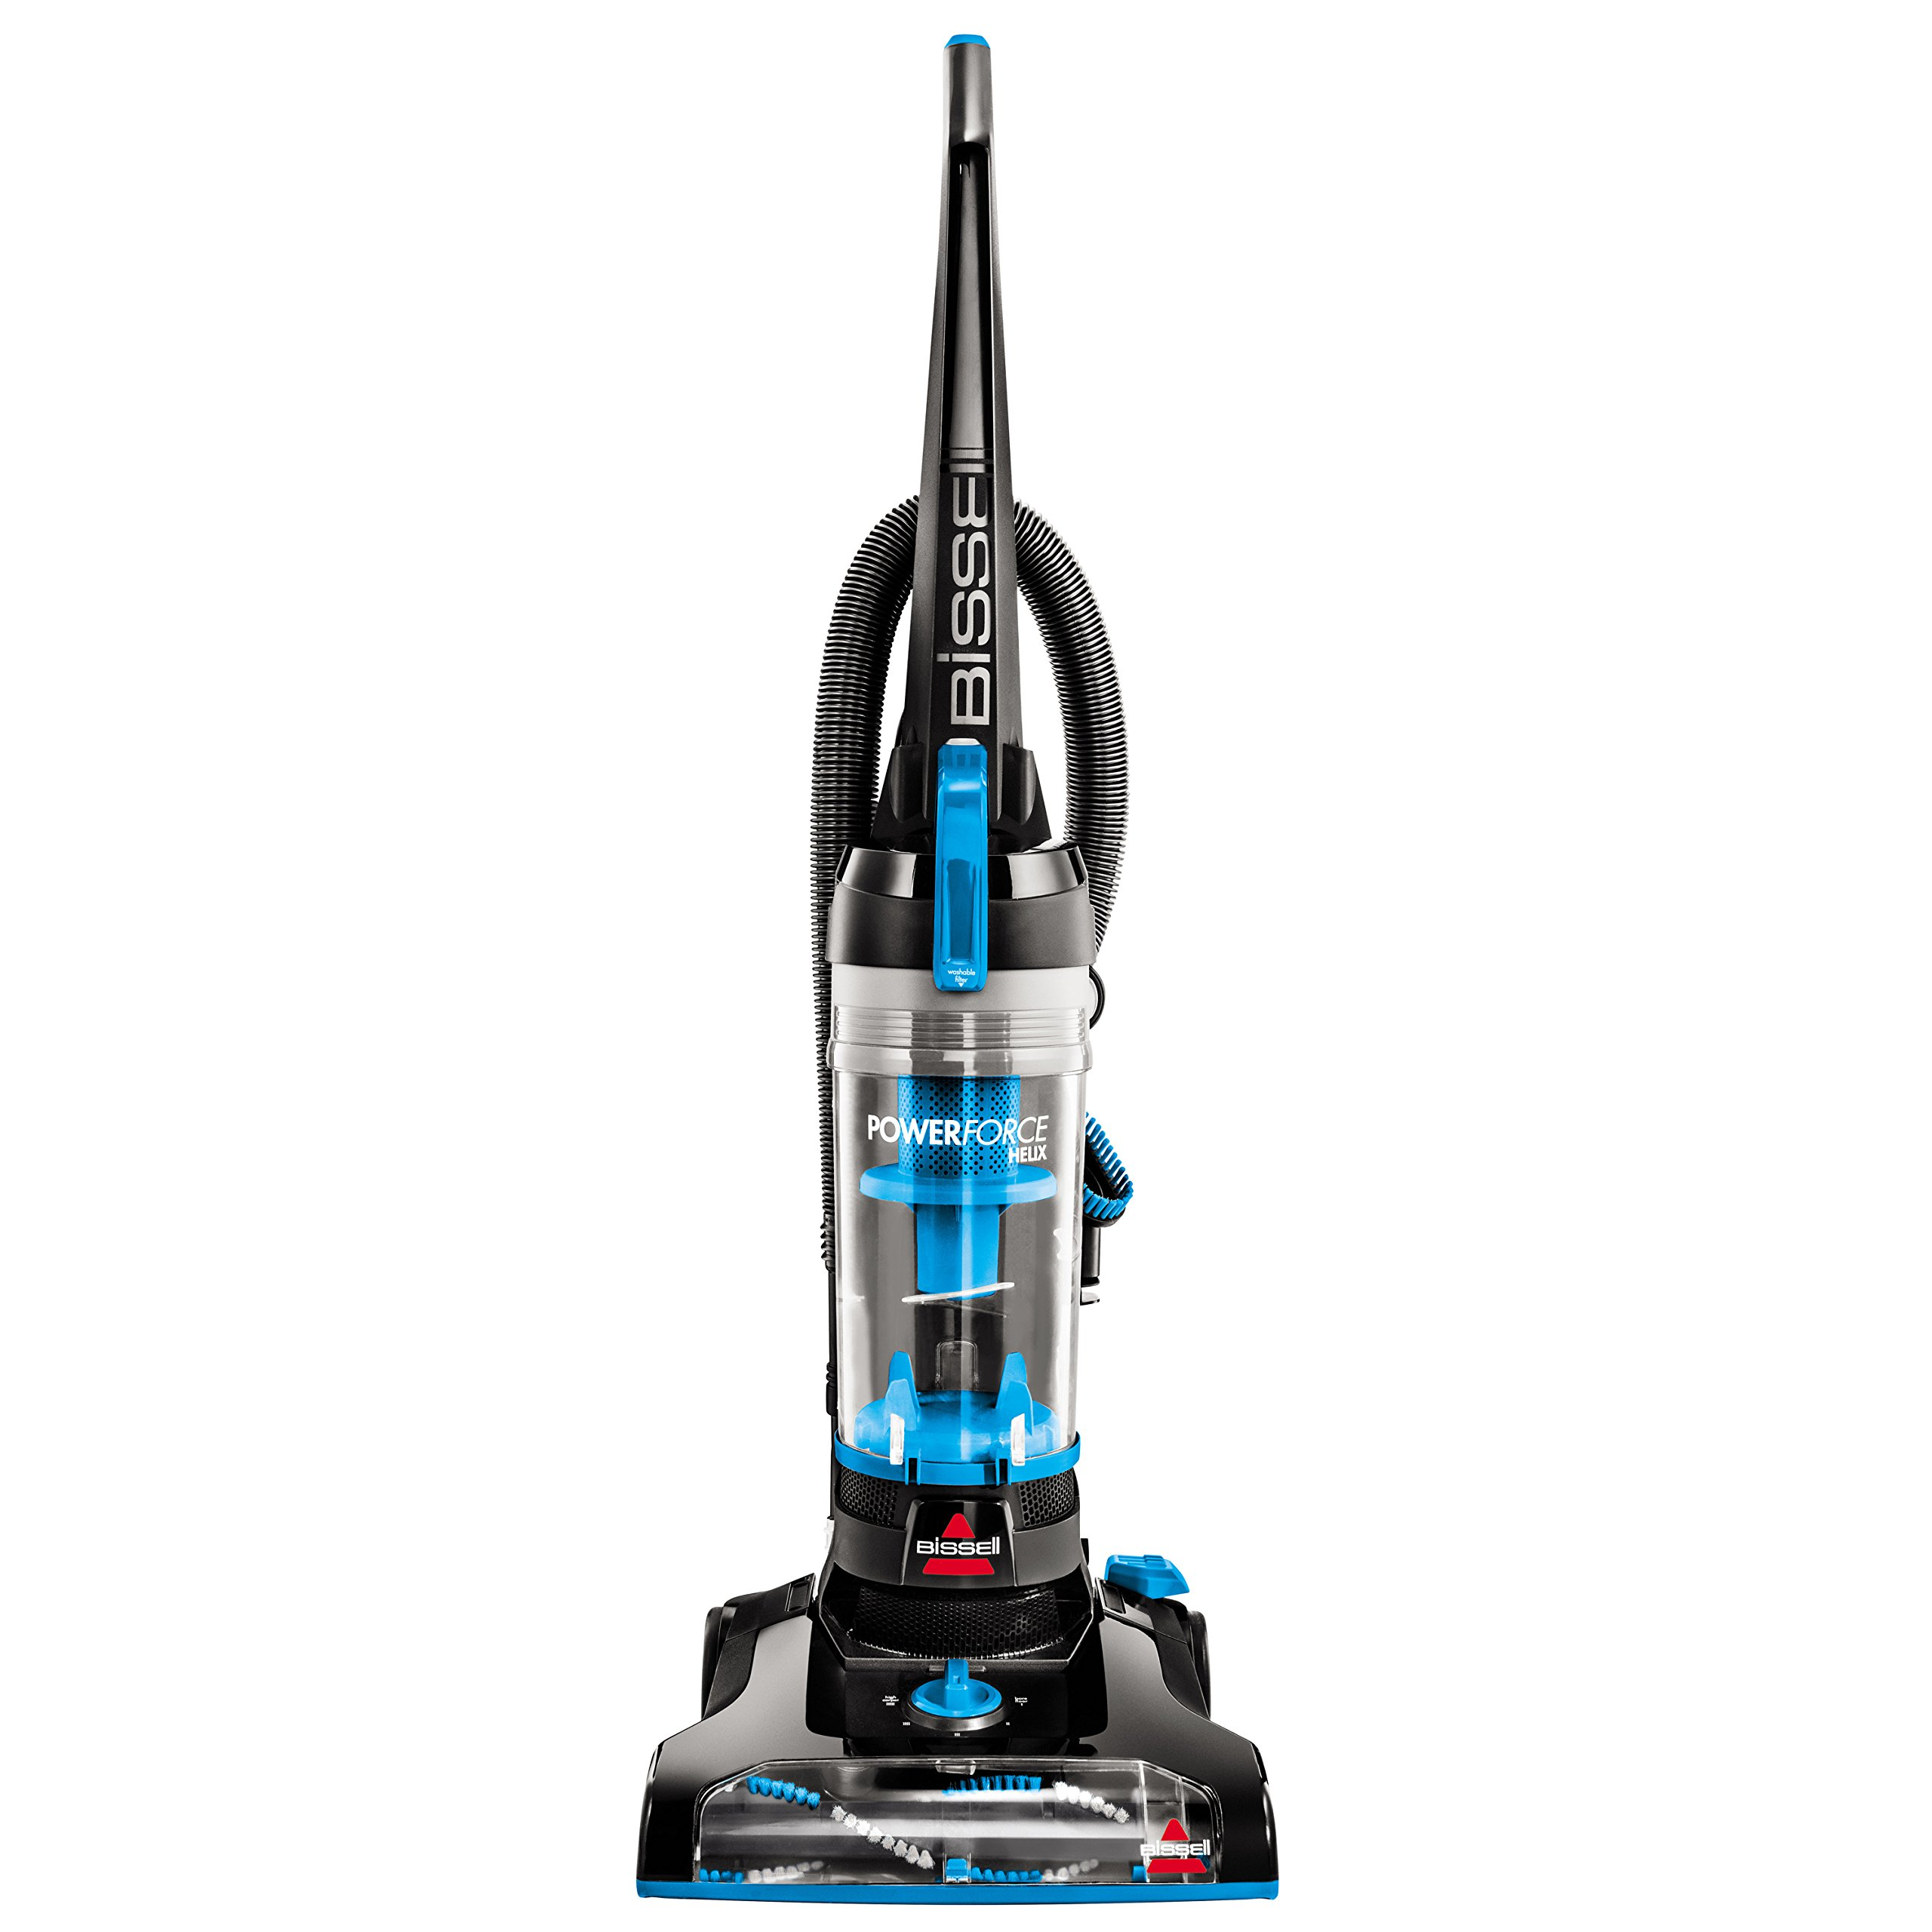 BISSELL PowerForce Helix Bagless Upright Vacuum (new and improved version of 1700), 2191 by Bissell